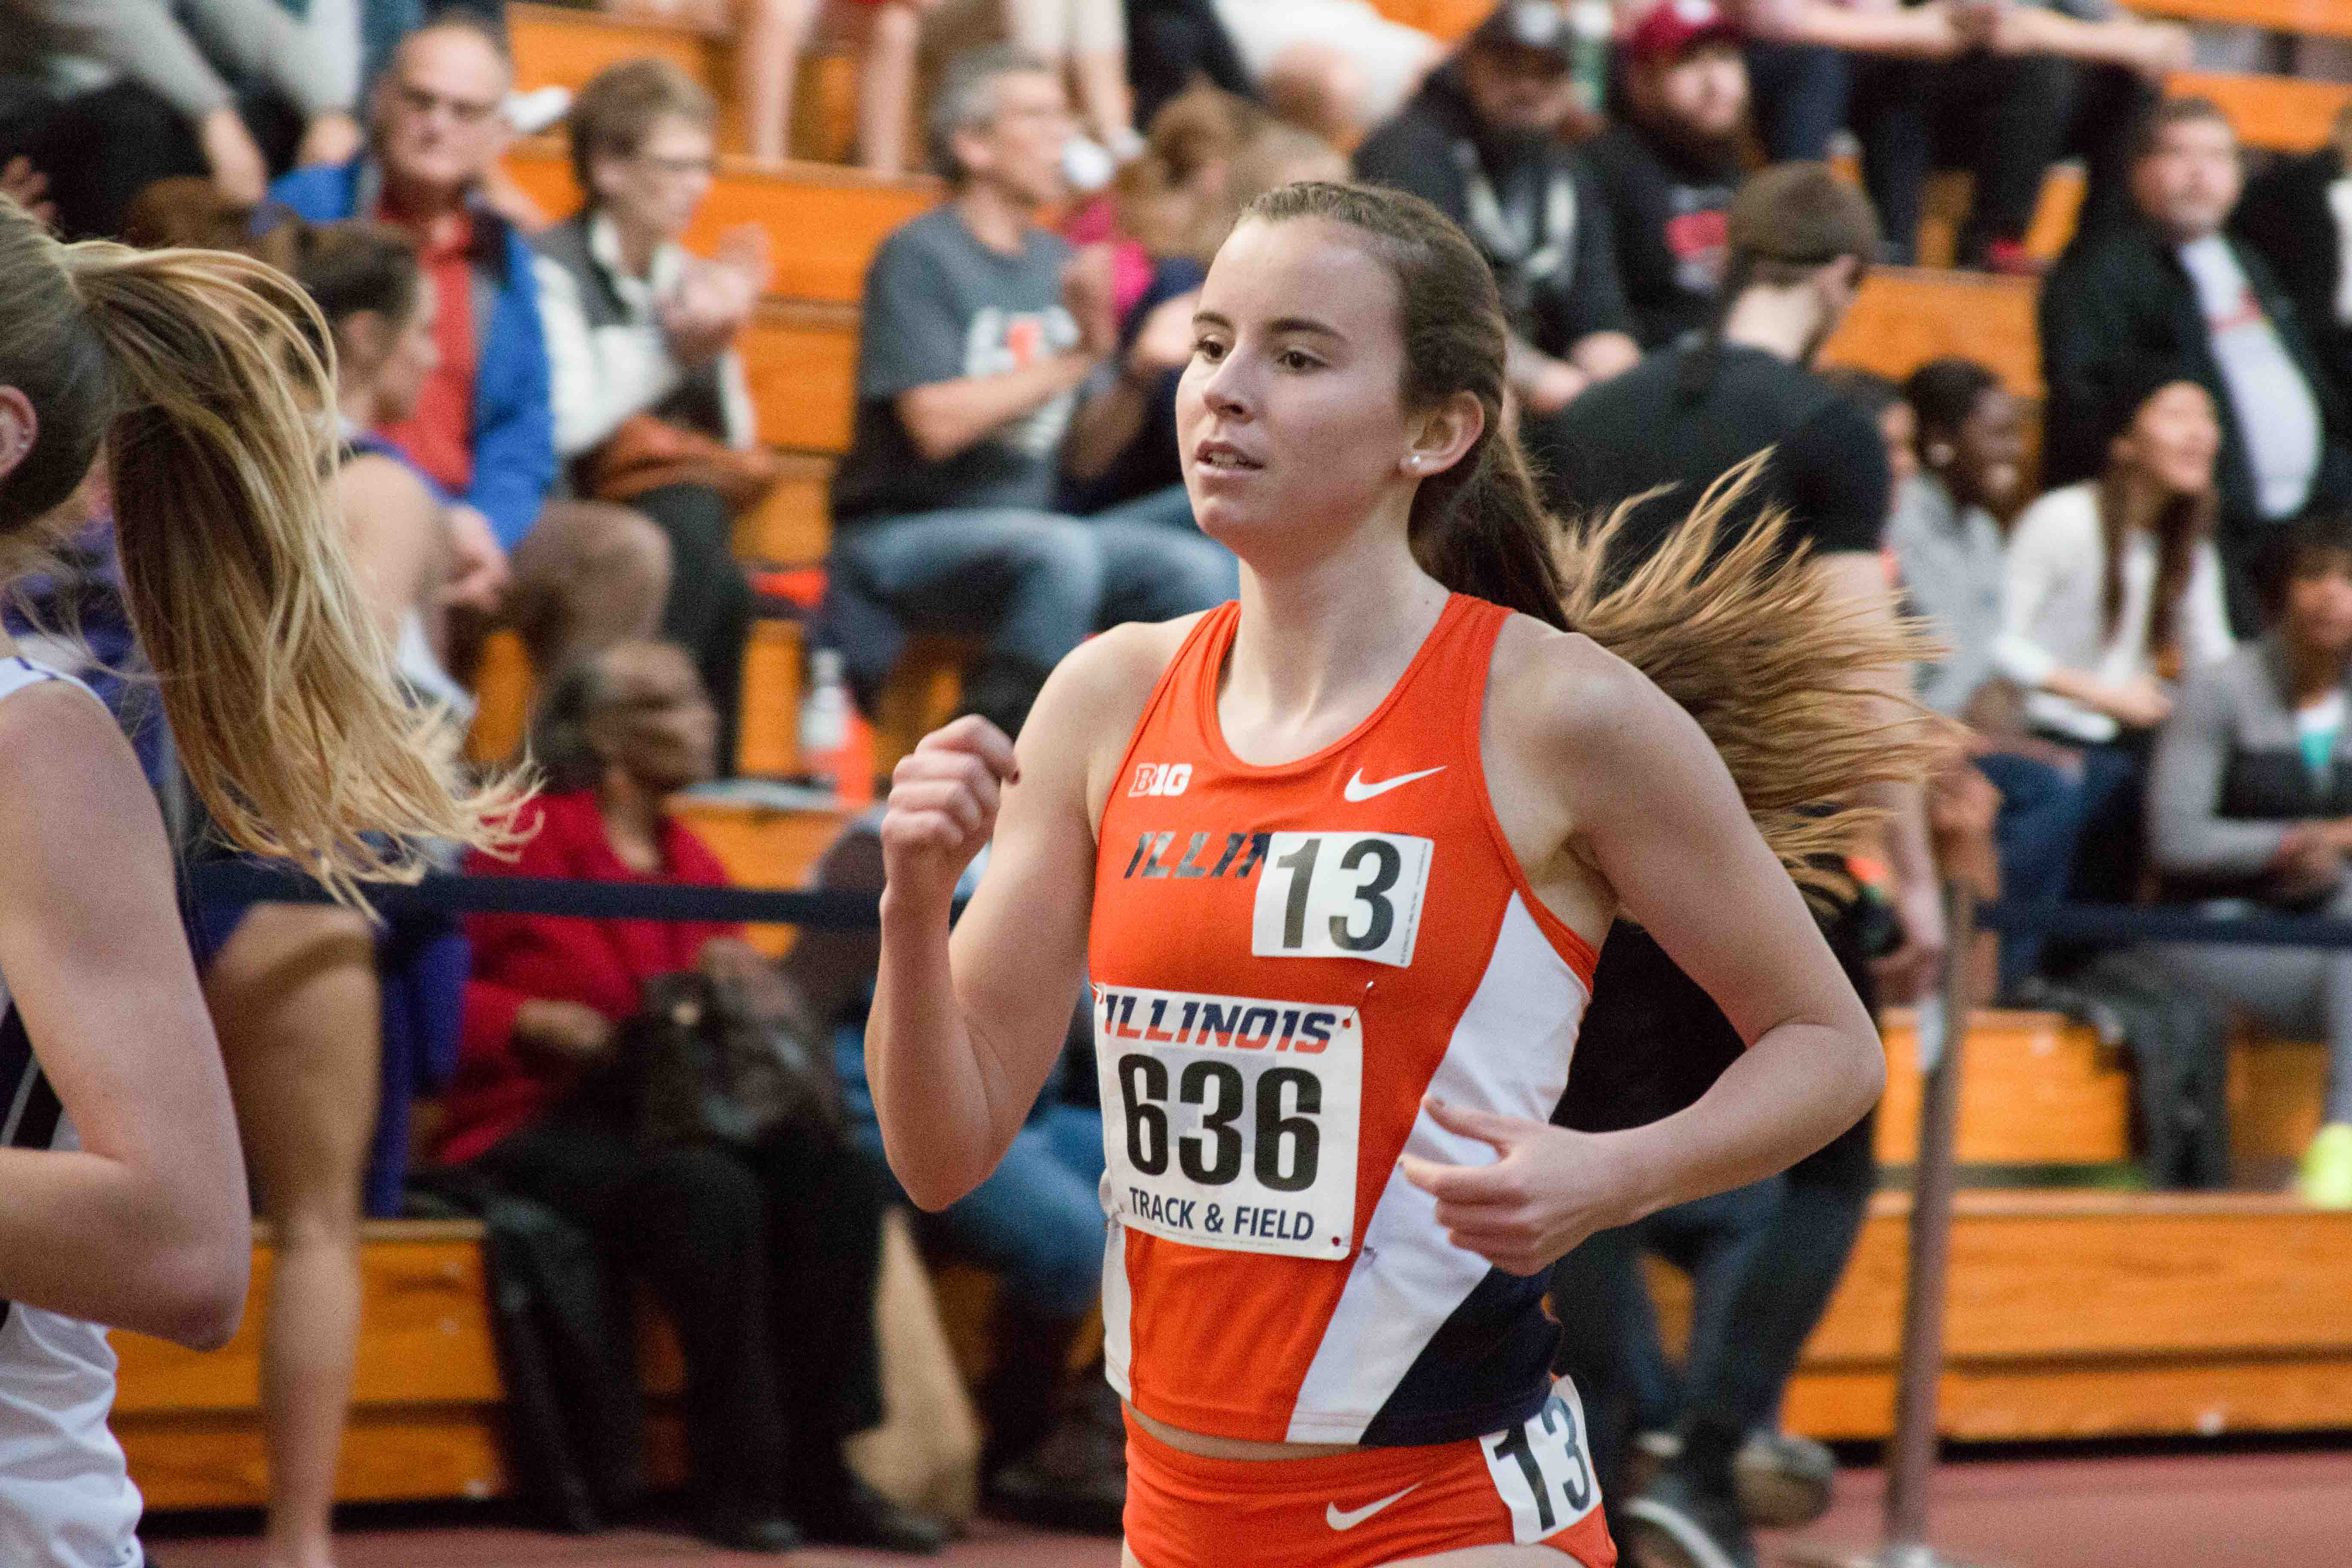 Valerie Bobart competes in the one-mile event during the Orange & Blue meet at the Armory on Feb. 20.